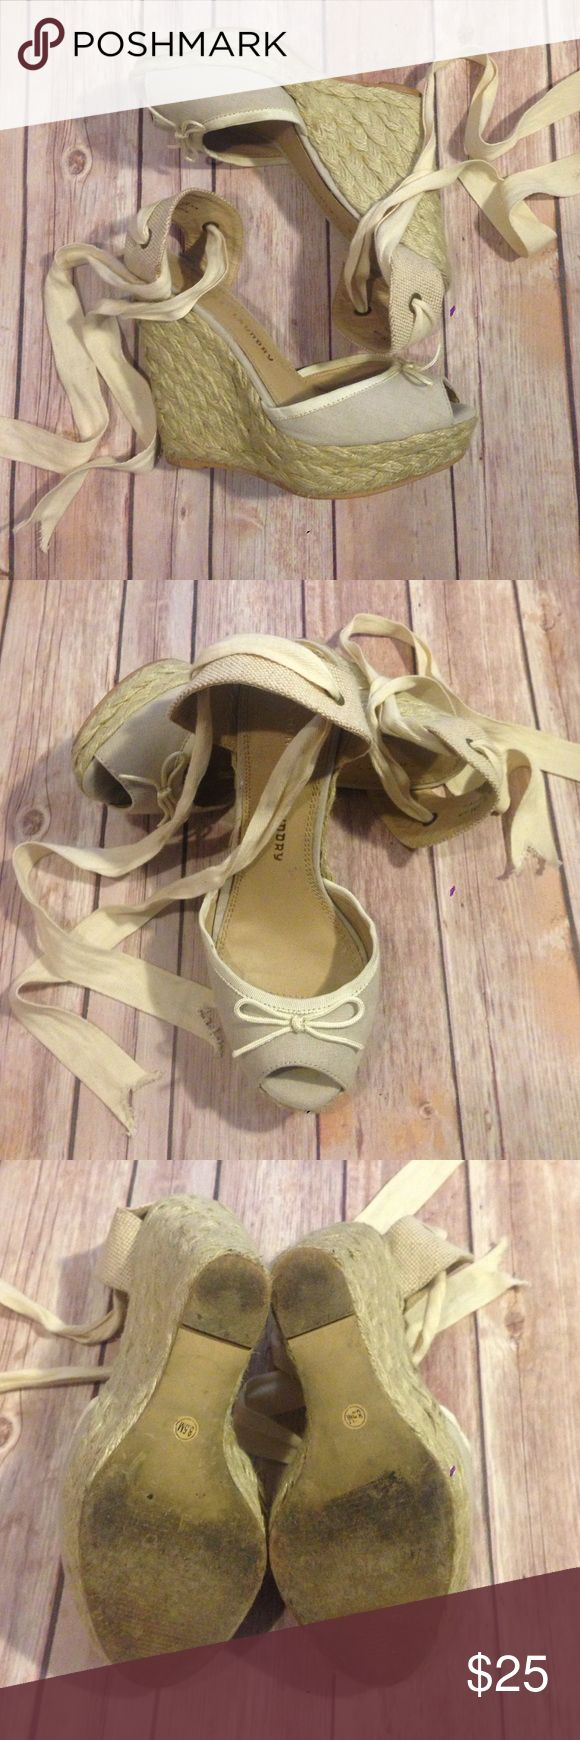 Super Cute Nude Espadrille Wedges Love these! They are a great versatile braided espadrille wedge! Front is a beige/light tan canvas with ivory grosgrain edging & ivory bow. Ties are ivory herringbone cotton ribbon. Only worn a couple times with only signs of wear to the soles. Chinese Laundry Shoes Wedges